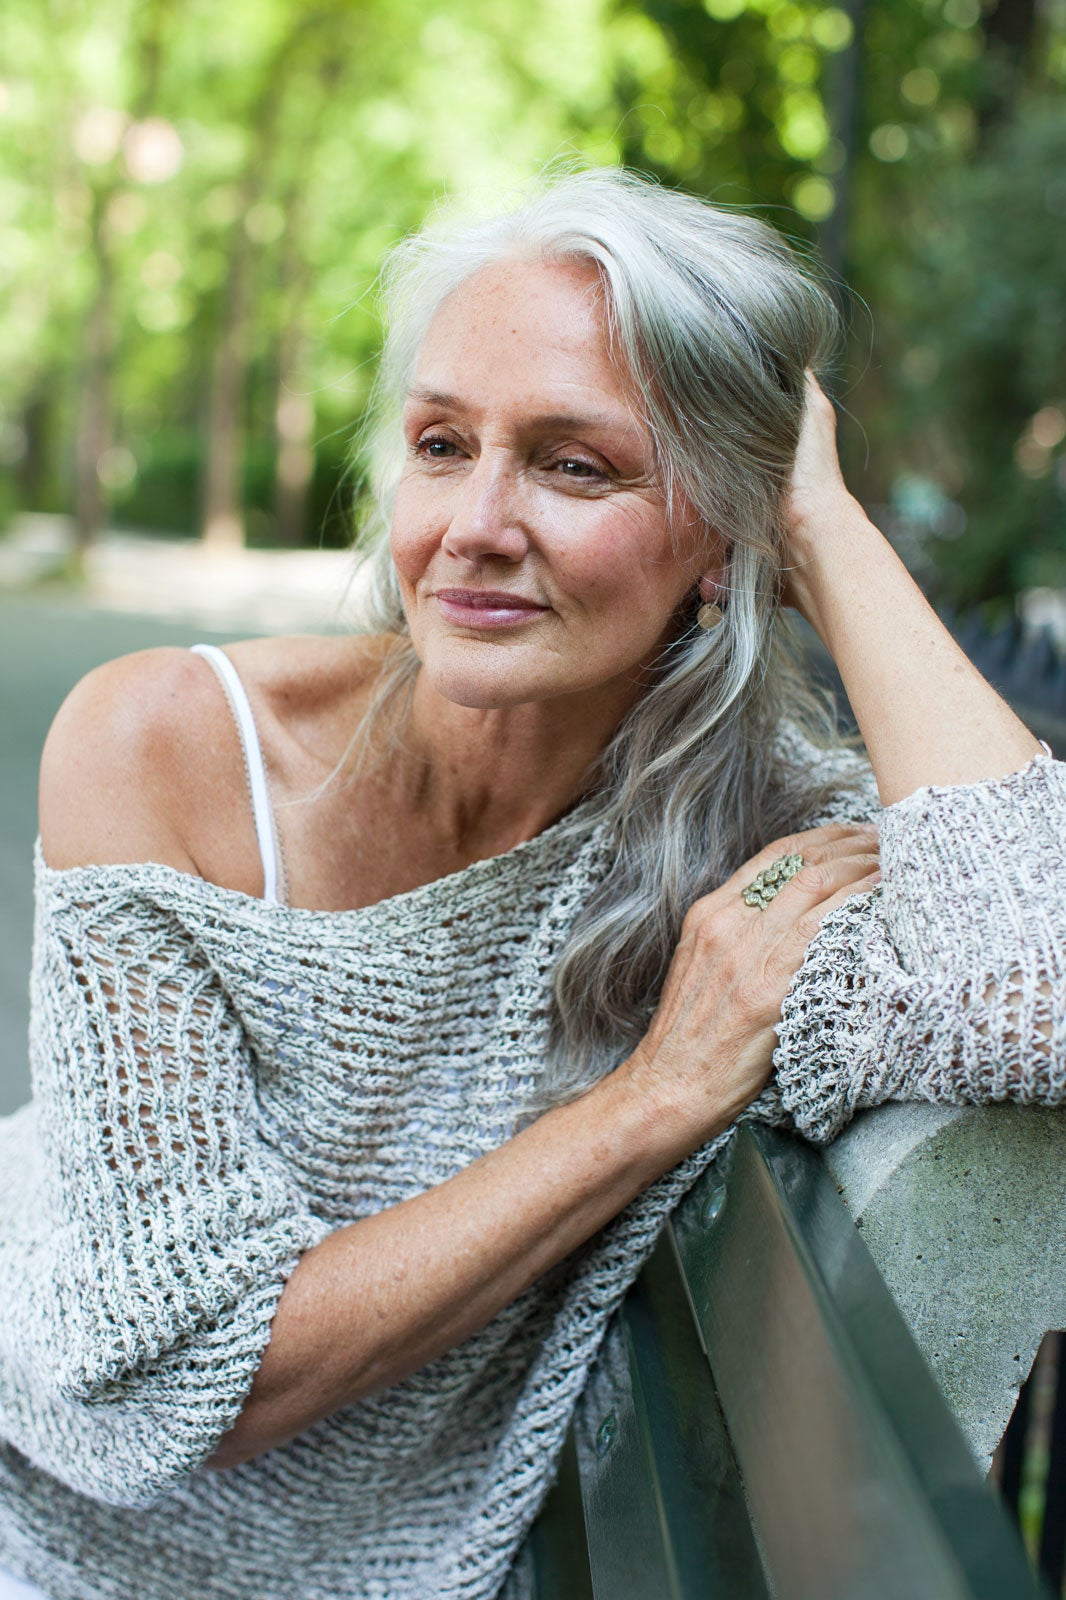 Pictures of 63 year old woman